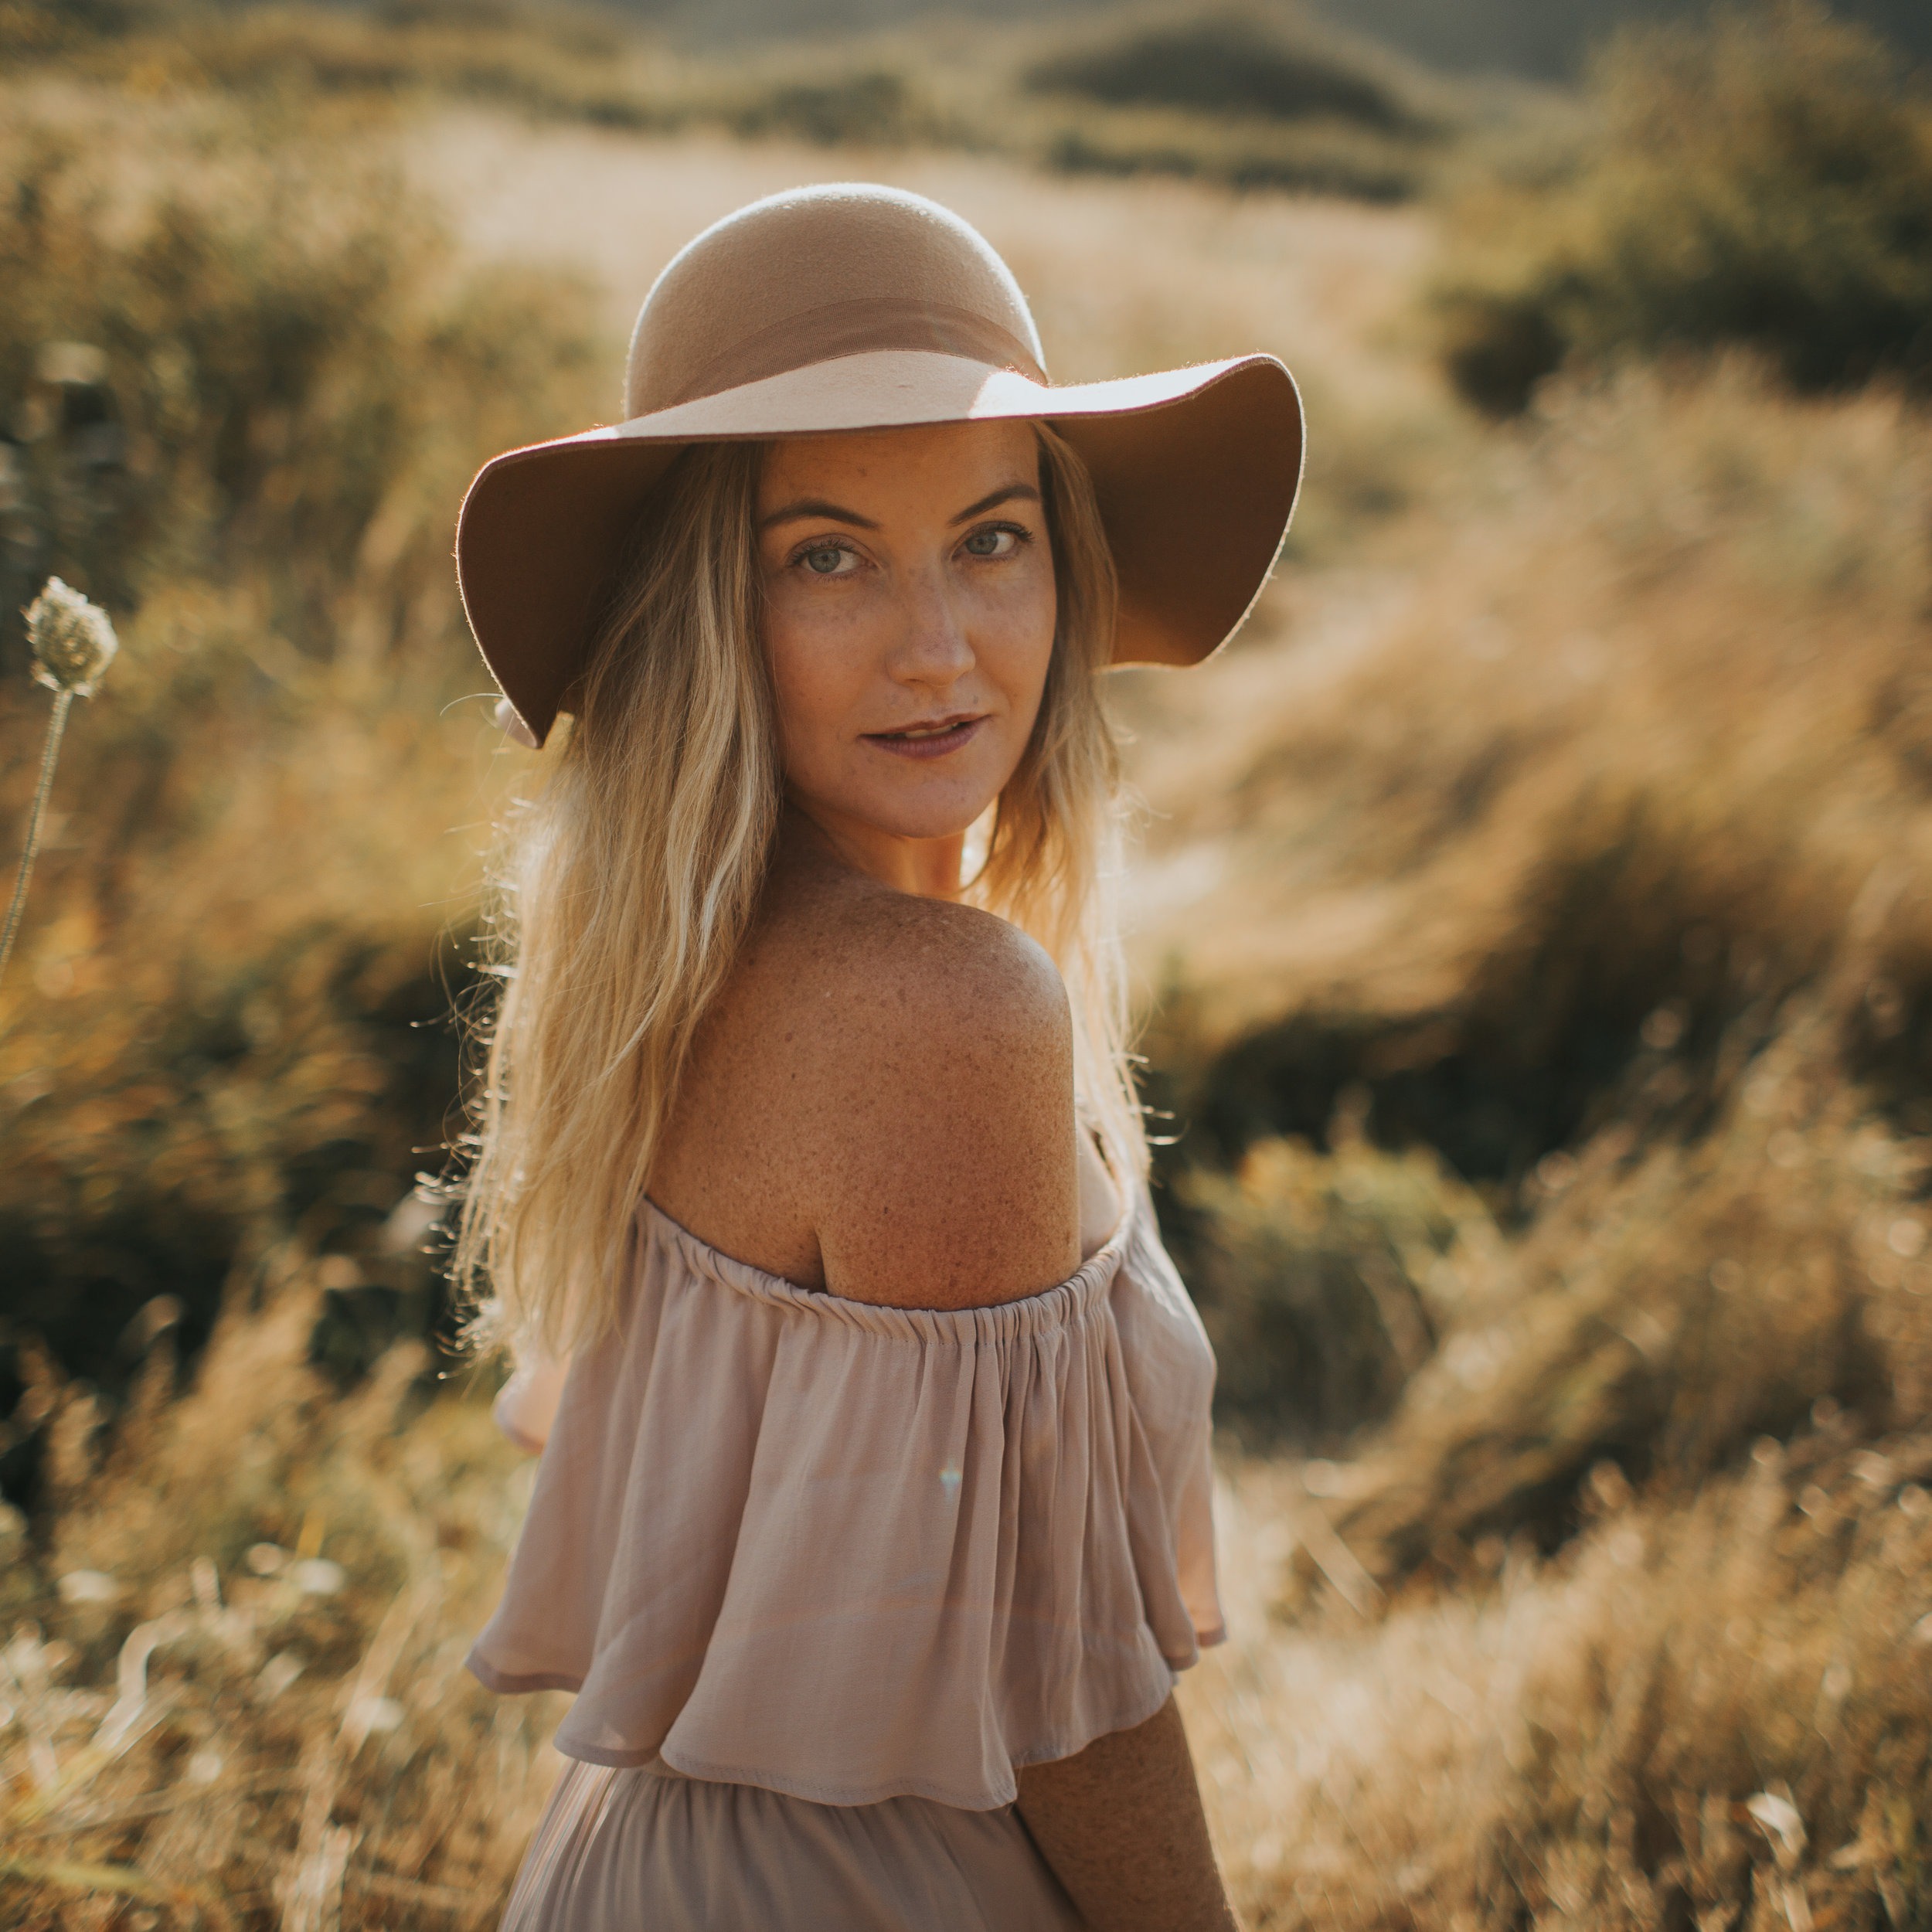 Leigh-Anne - As a lifestyle photographer, it is my passion to illustrate the magic in the ordinary.As a portrait photographer, it is my creative expression to capture the true, beautiful you.